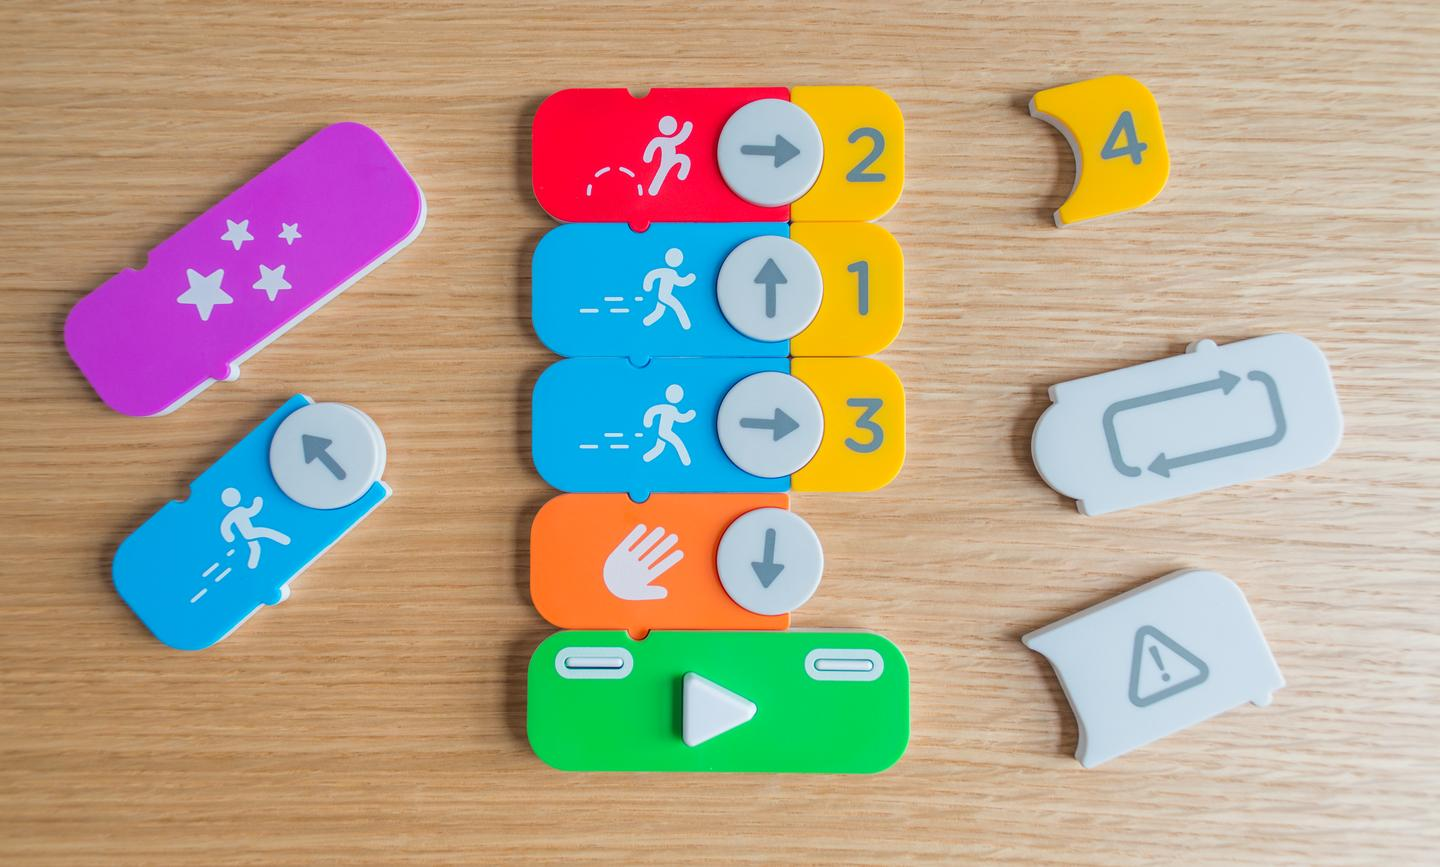 As the Osmo Coding  game develops, users need to create more complex code sequences with the blocks